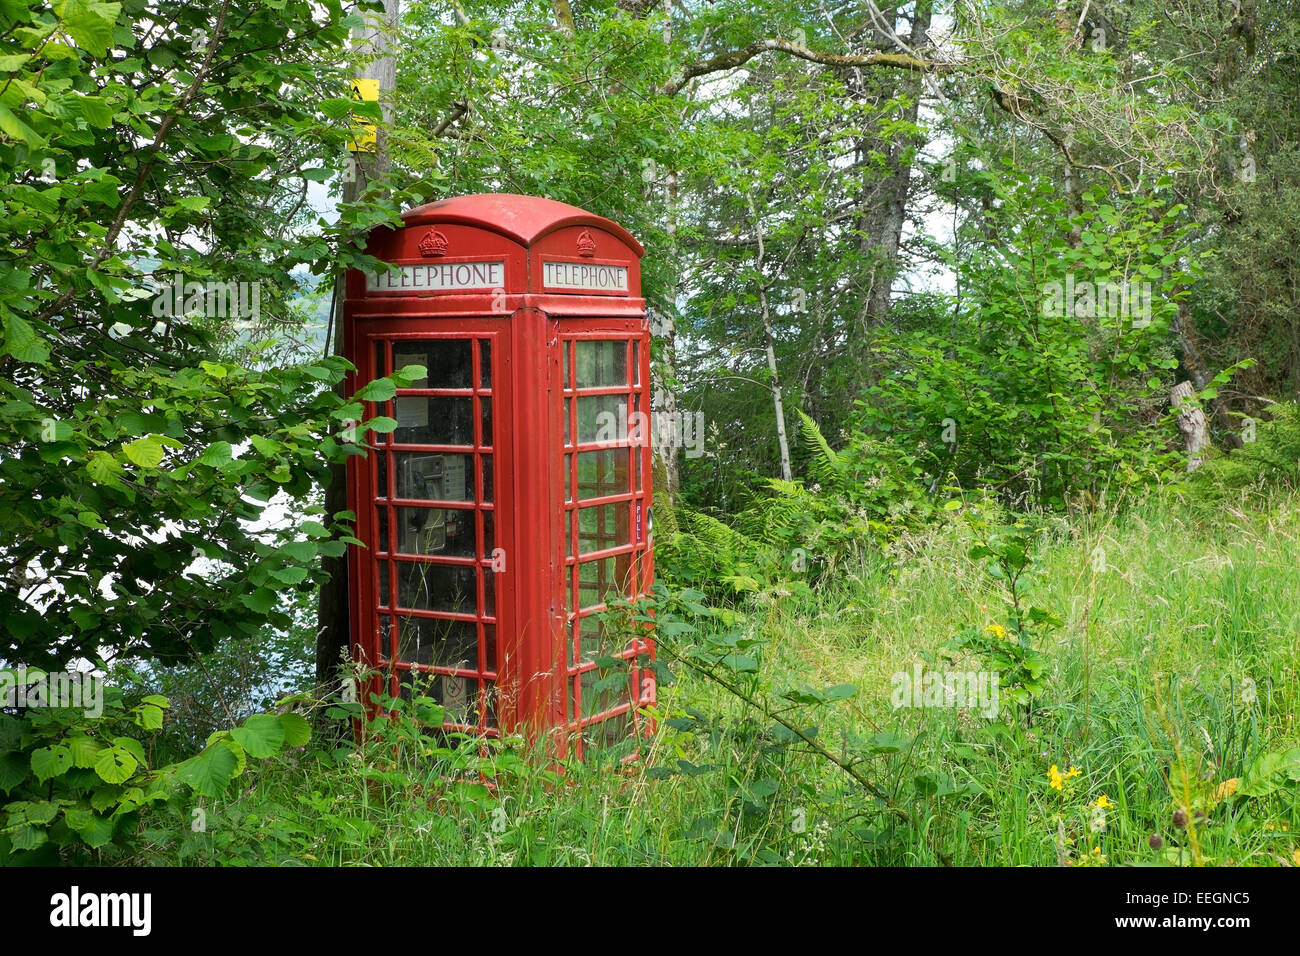 A traditional red telephone box in a country lane, hidden by trees. Scotland. - Stock Image